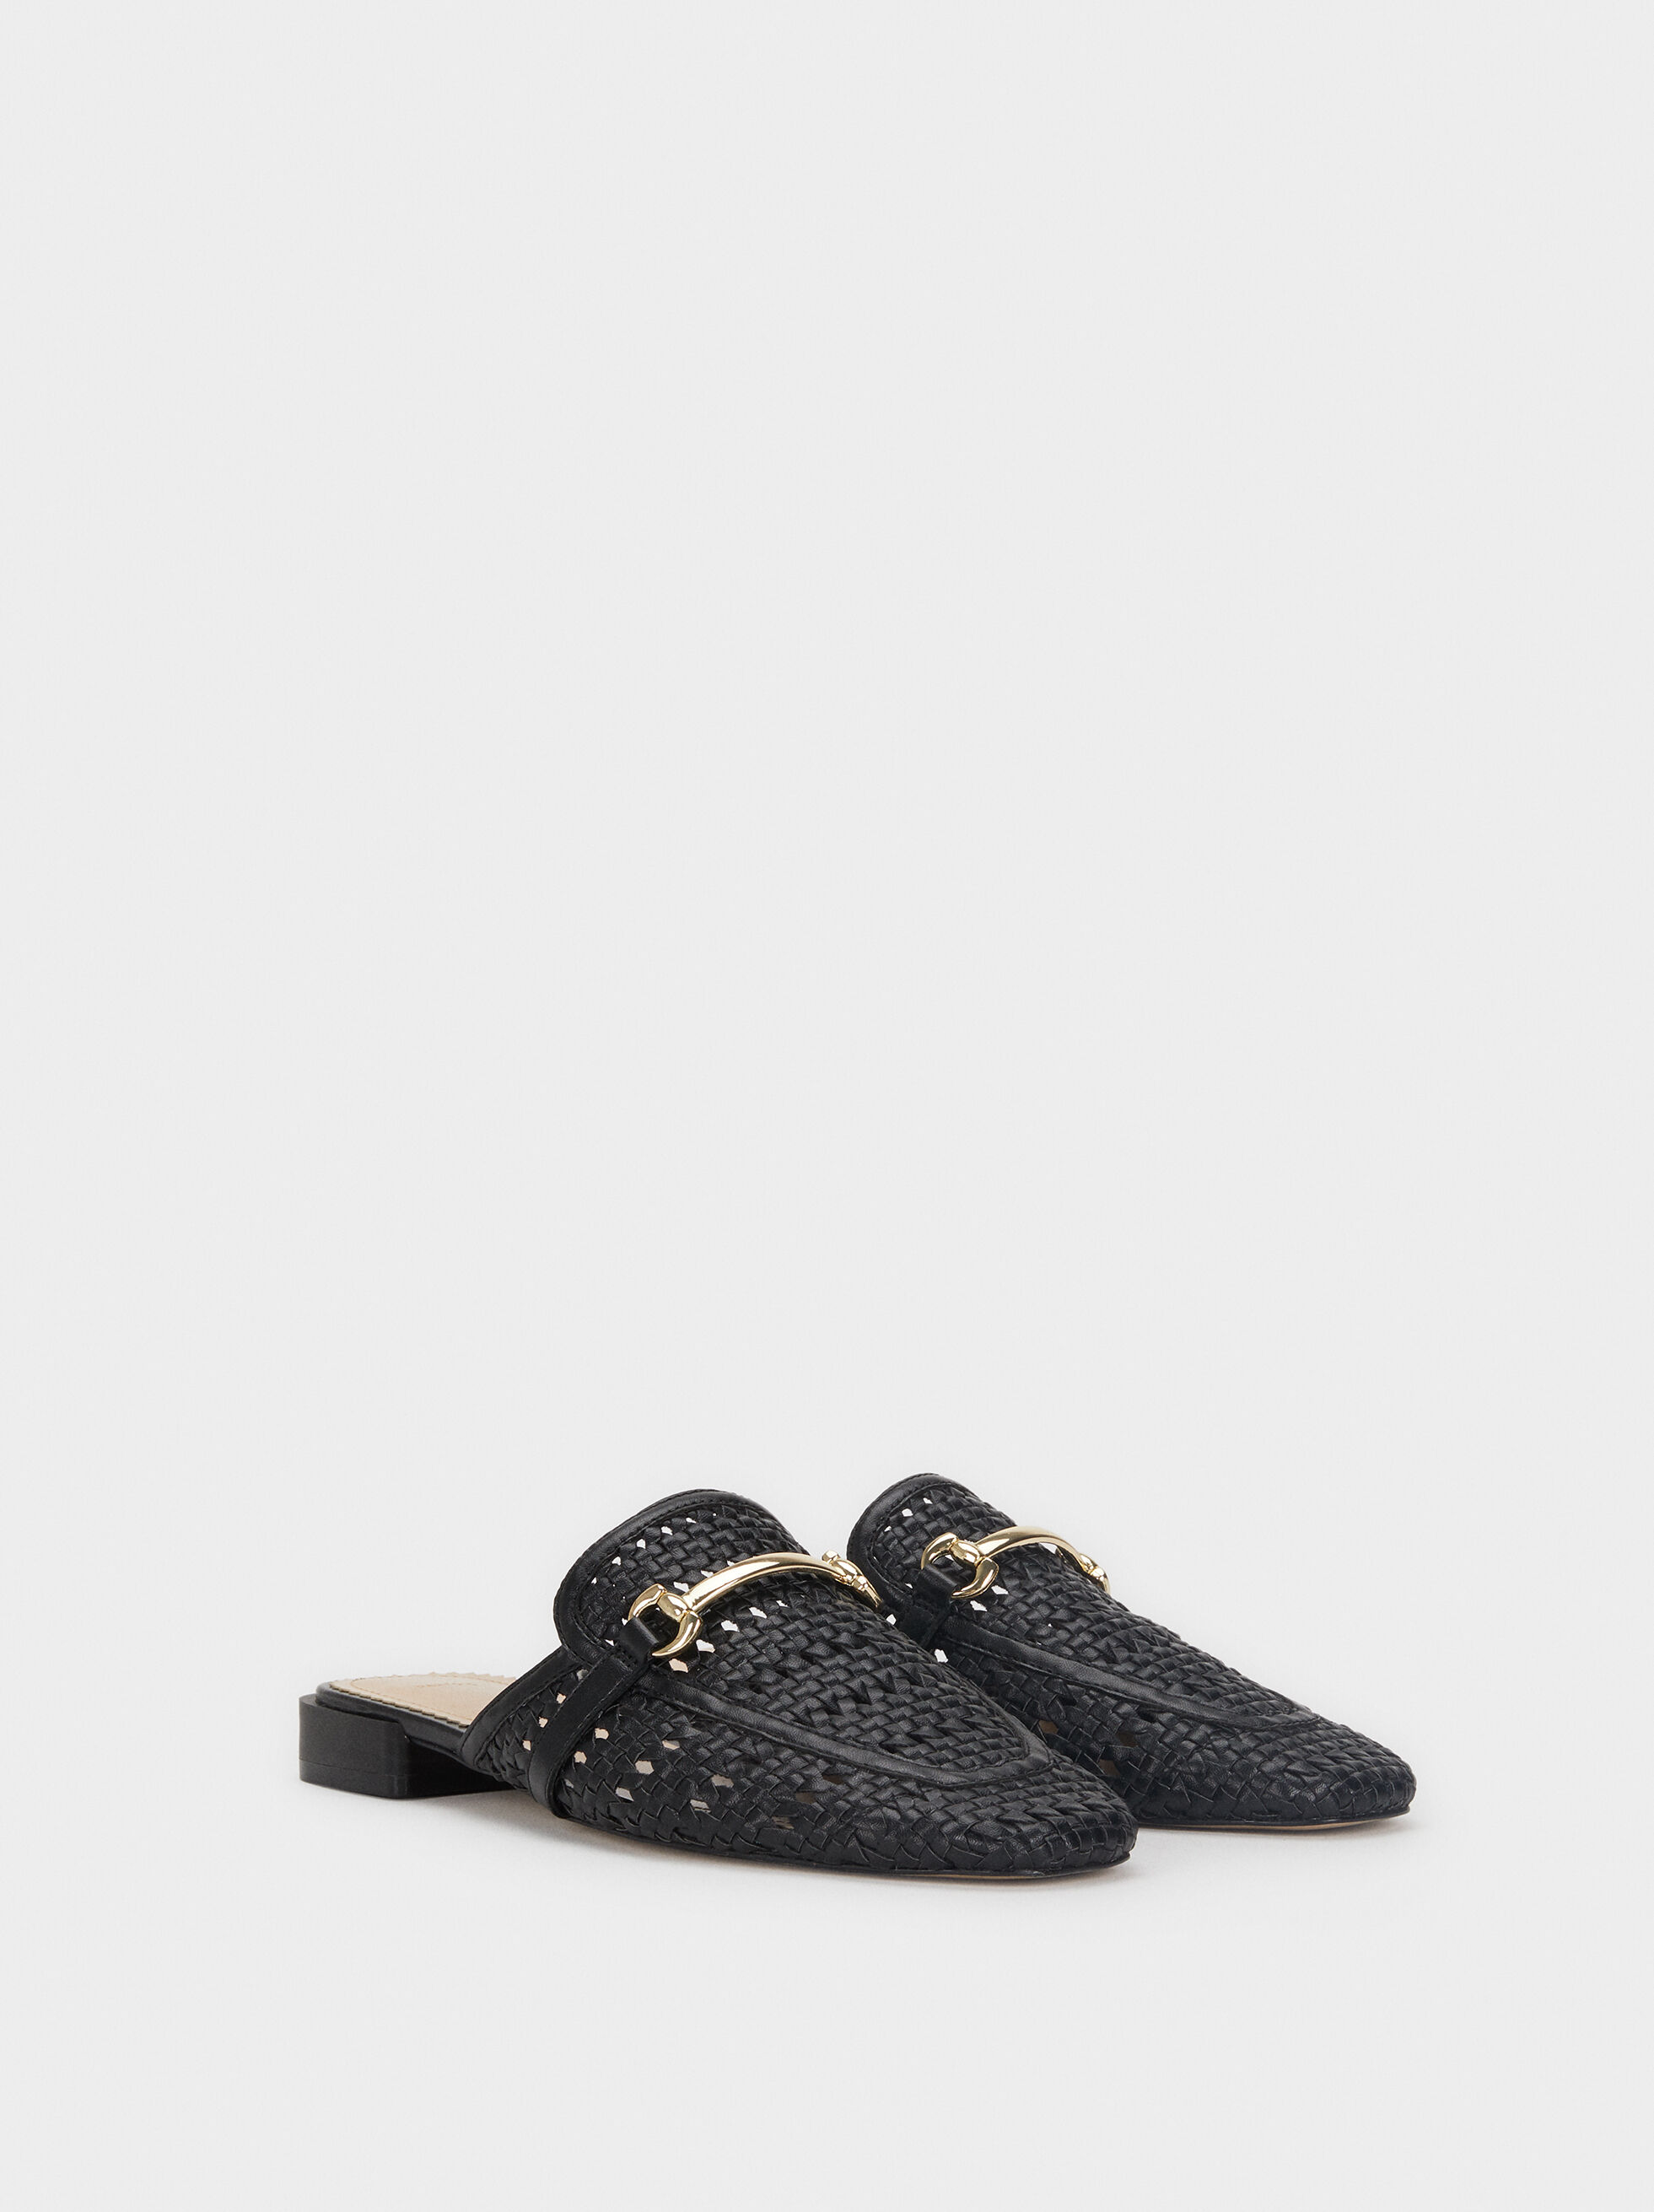 Flat Plaited Mules With Metallic Details, Black, hi-res